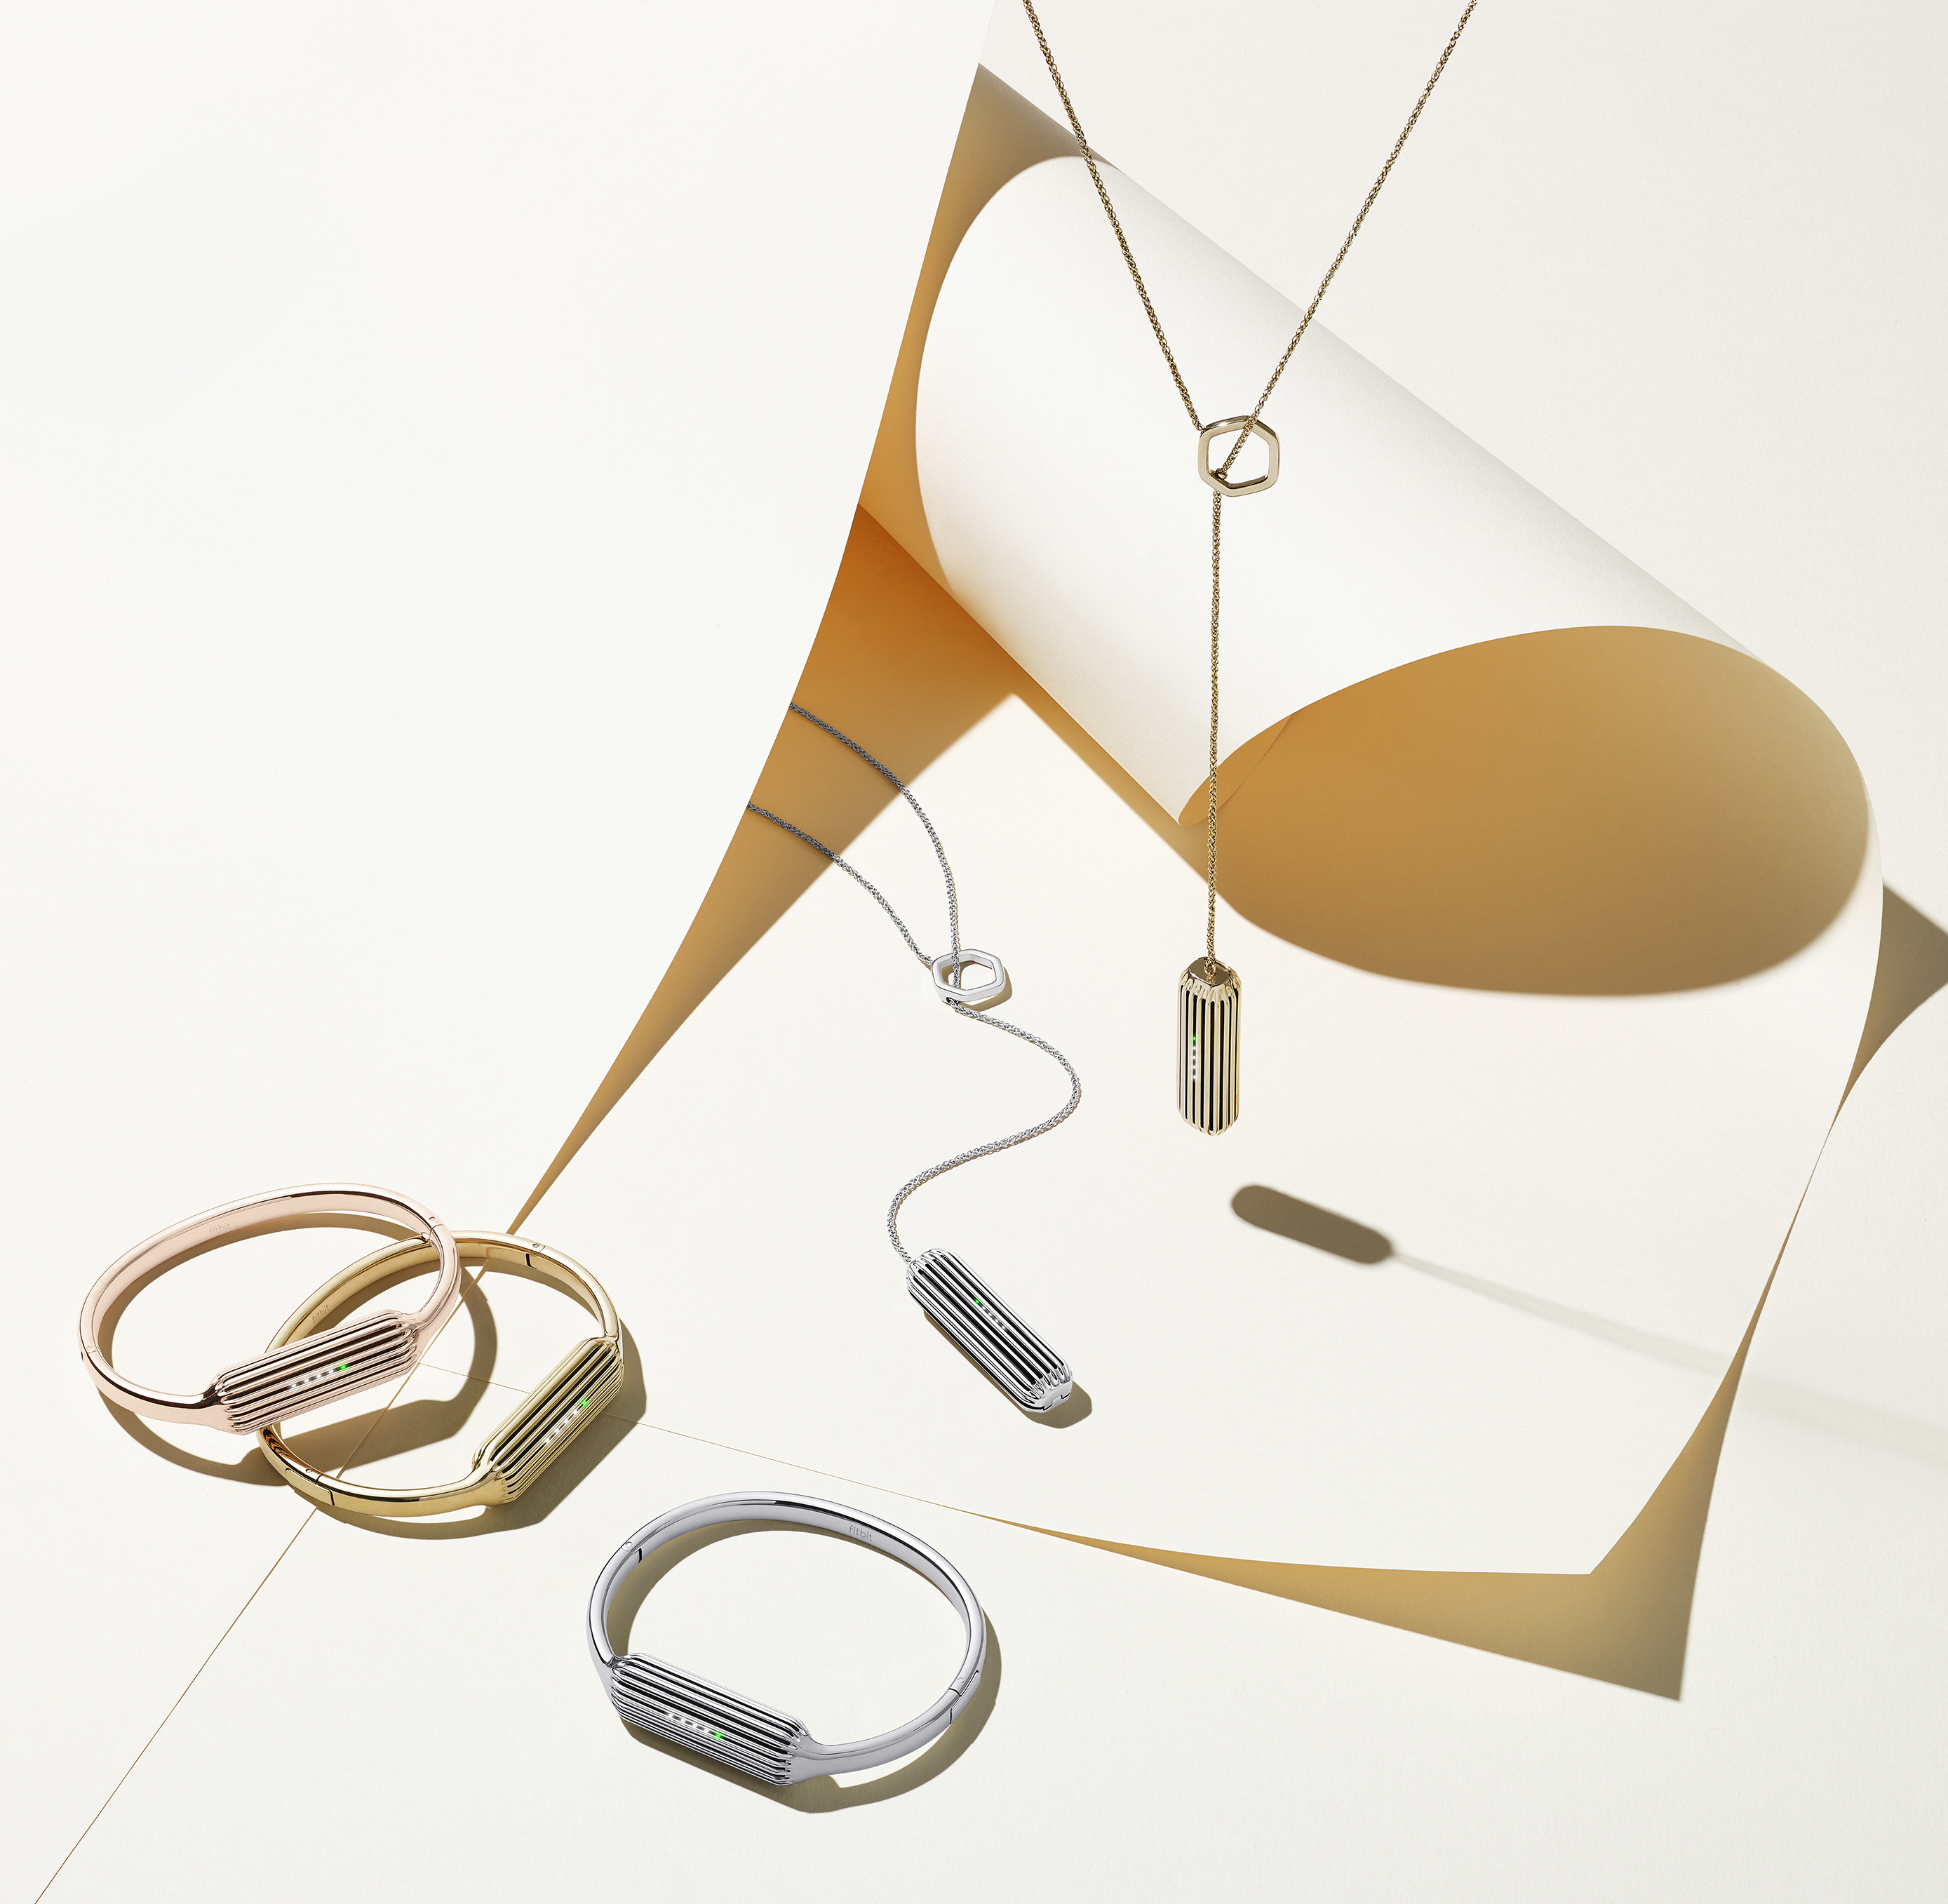 Fitbit Flex 2 accessory bangles and necklaces, not immediately available.